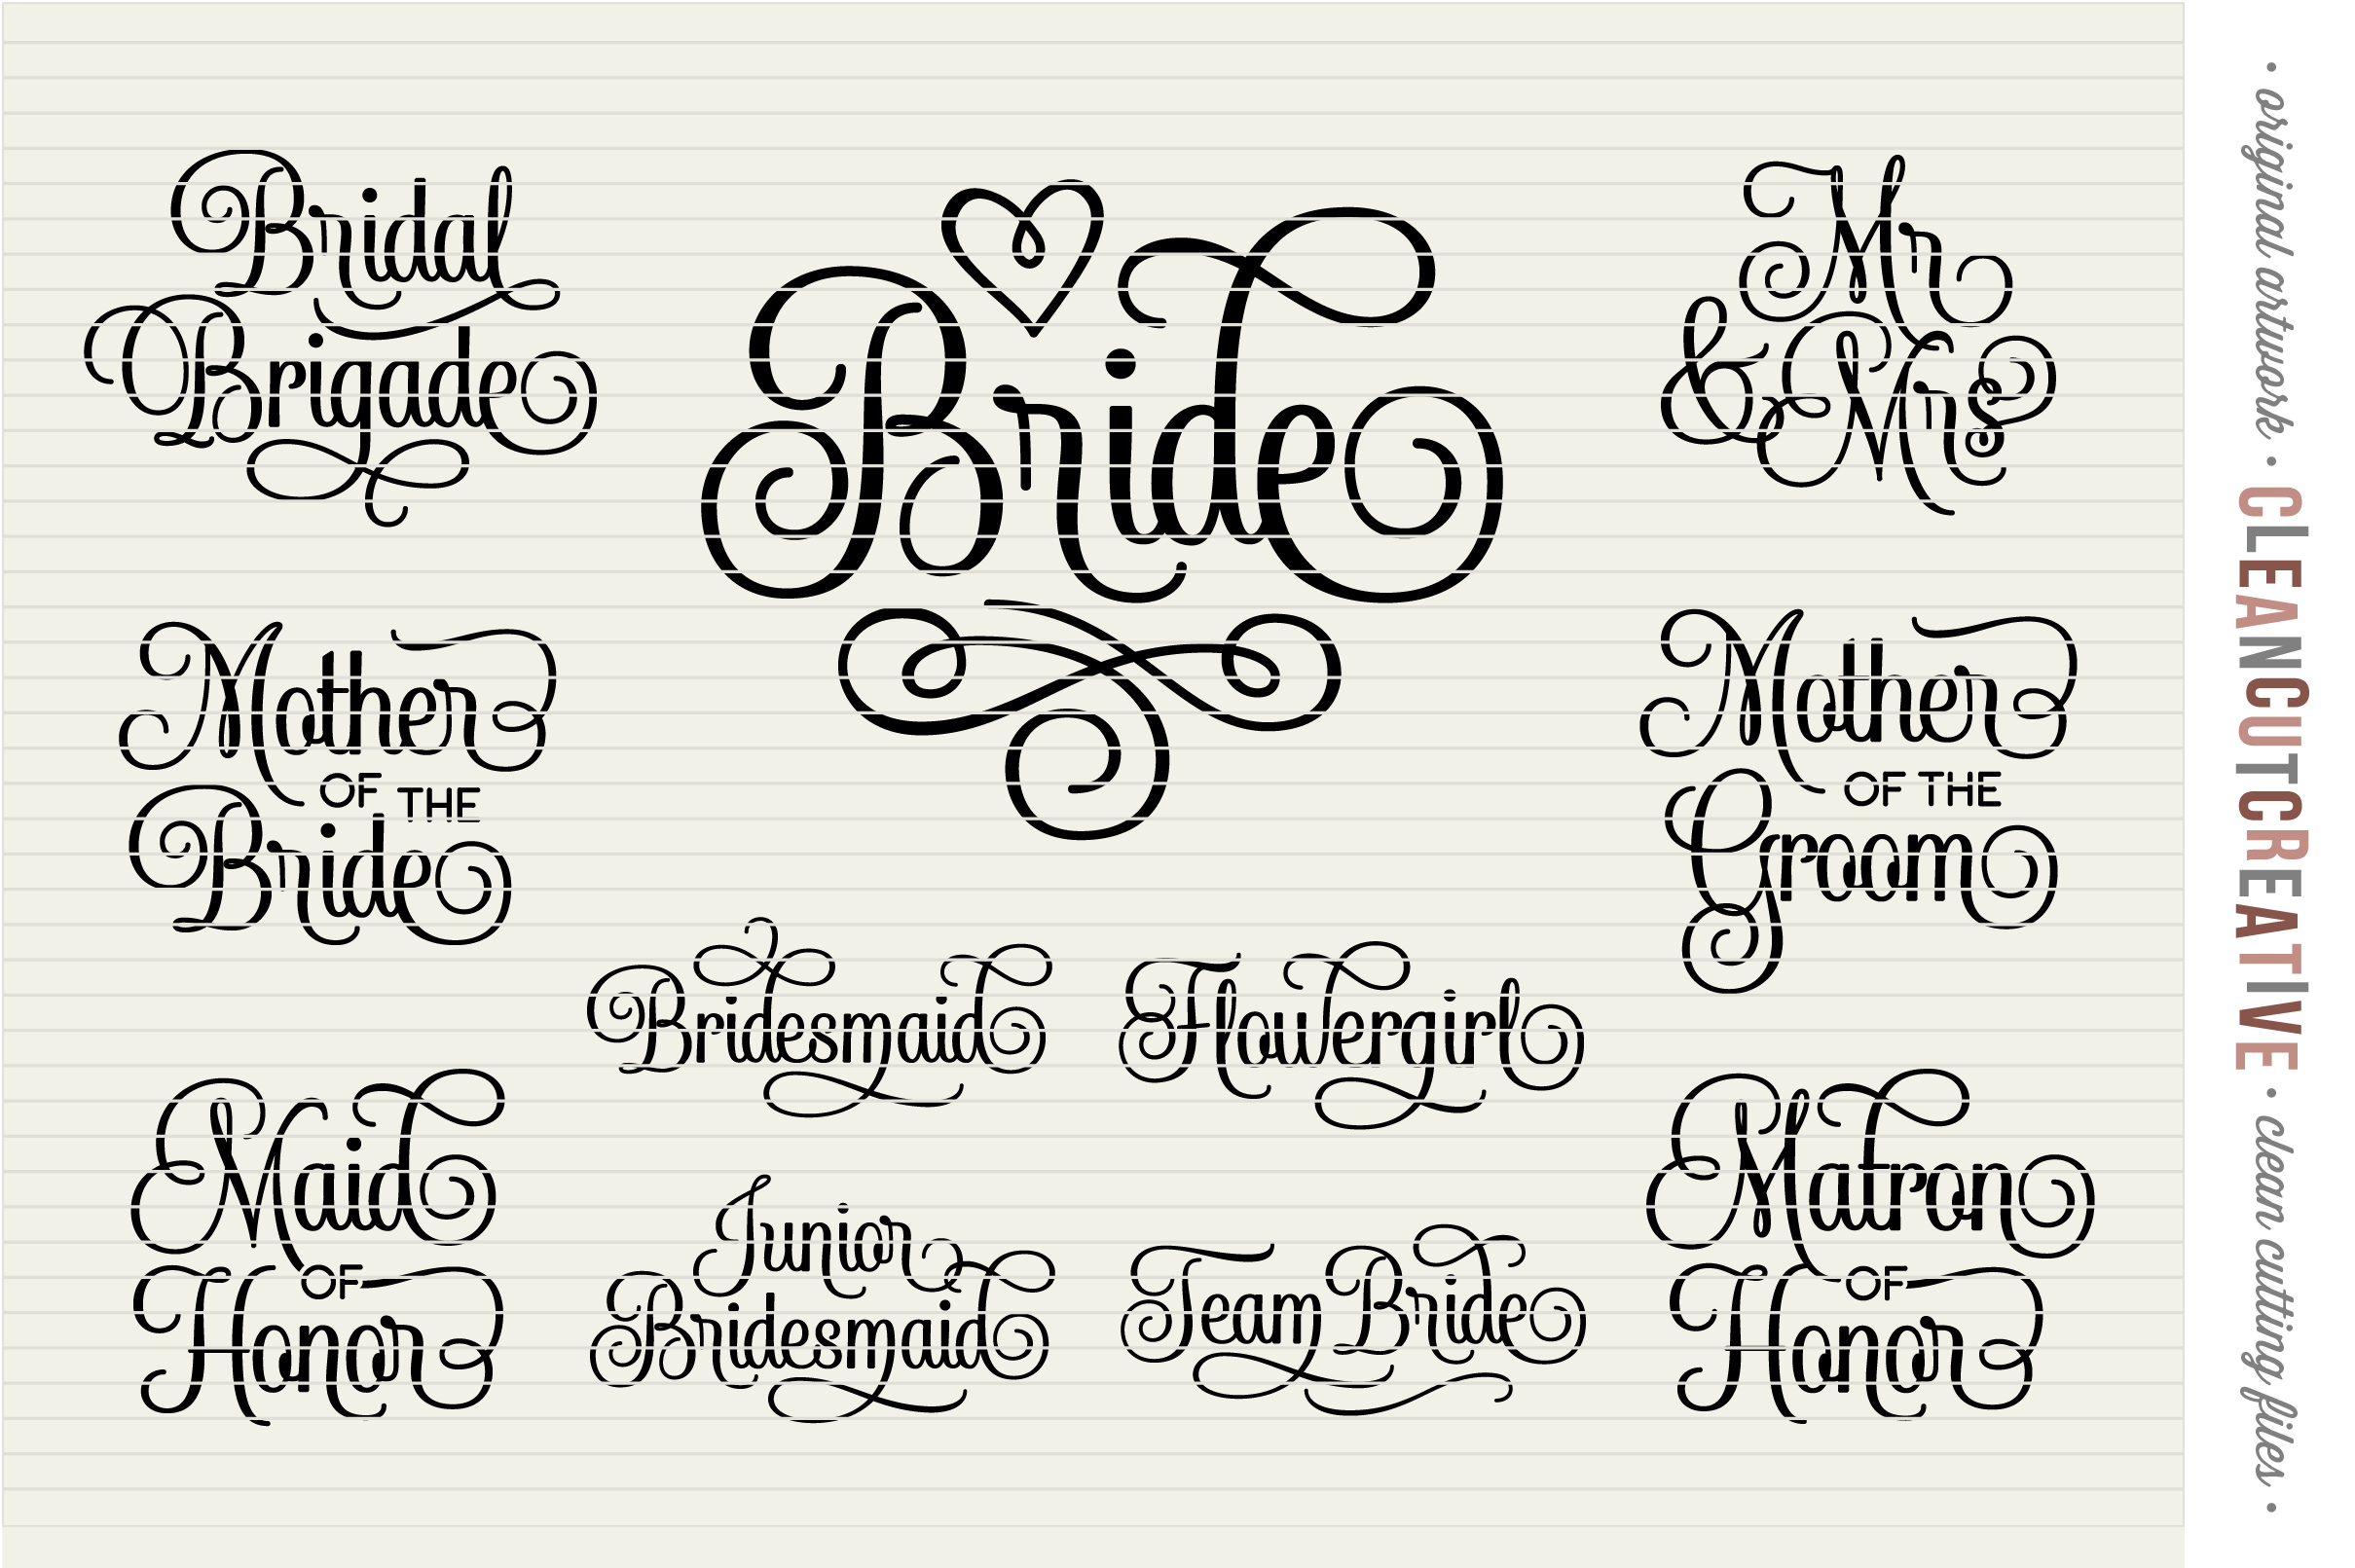 Bridal Party - Wedding Party - SET of 11 - SVG DXF EPS PNG - Cricut & Silhouette - clean cutting files example image 3